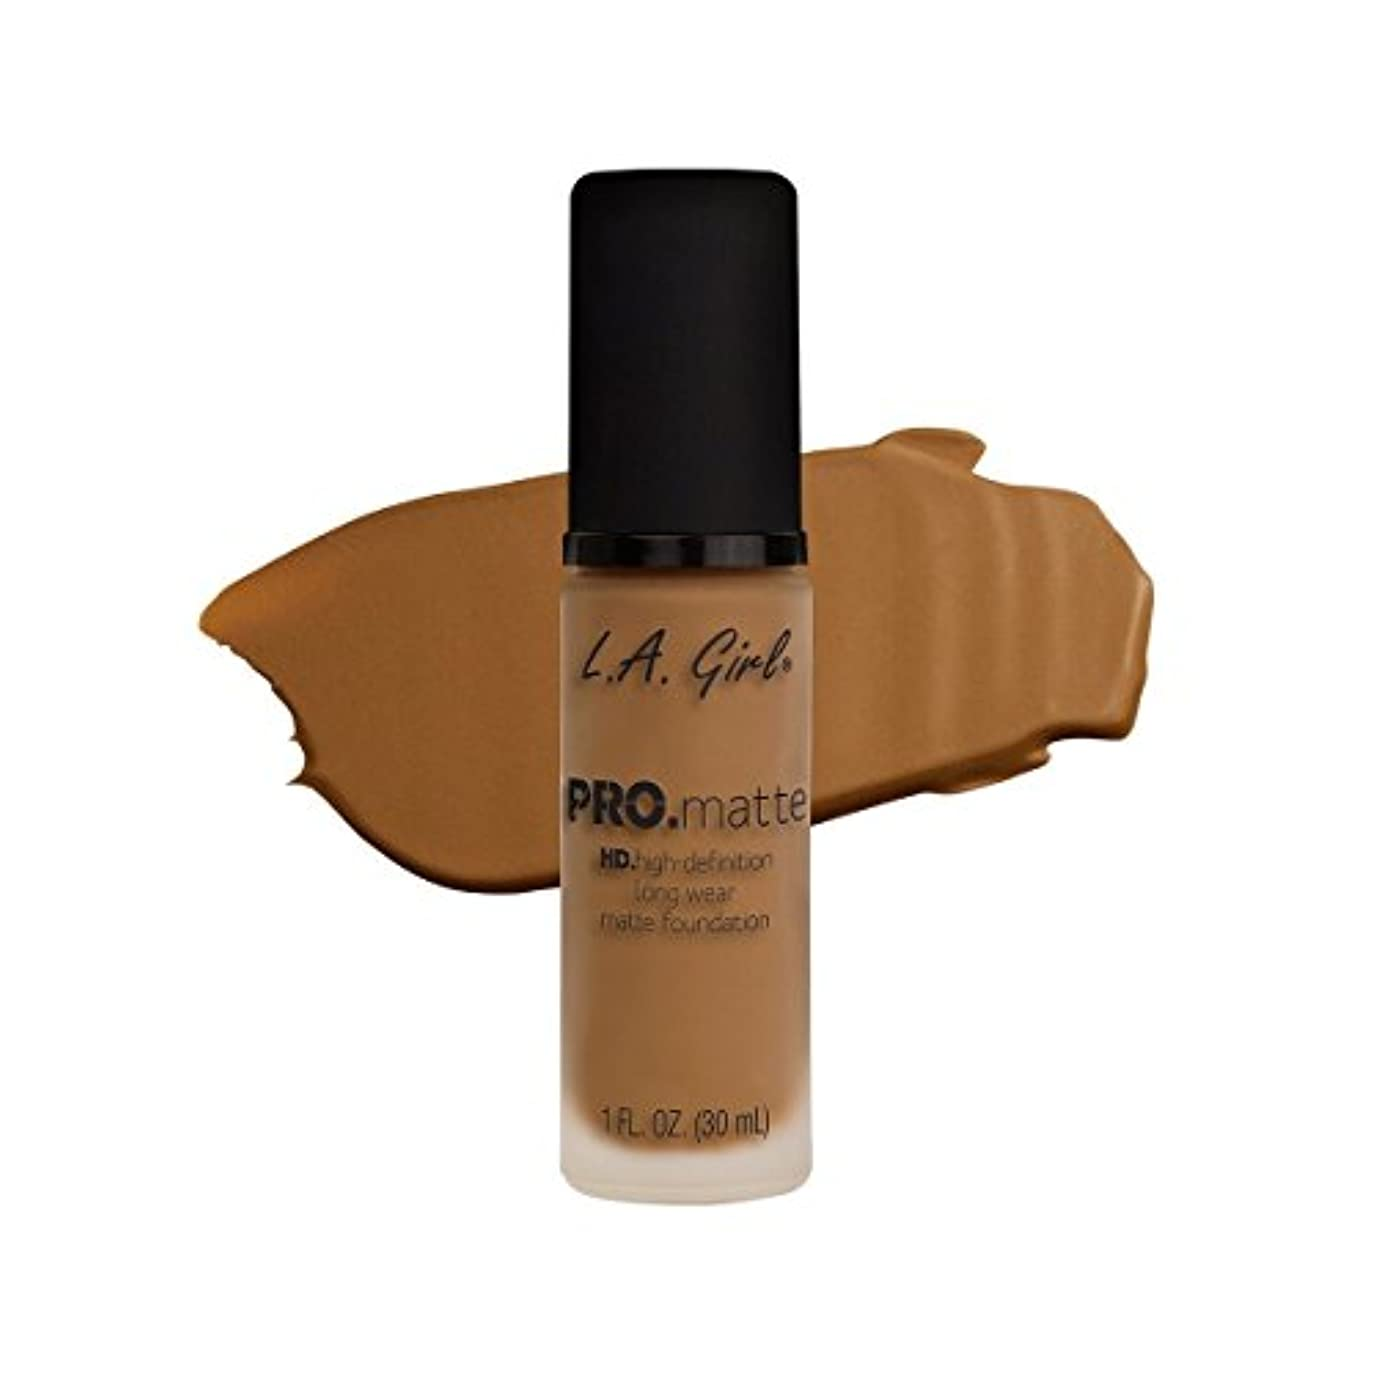 医師更新する散る(3 Pack) L.A. GIRL Pro Matte Foundation - Caramel (並行輸入品)